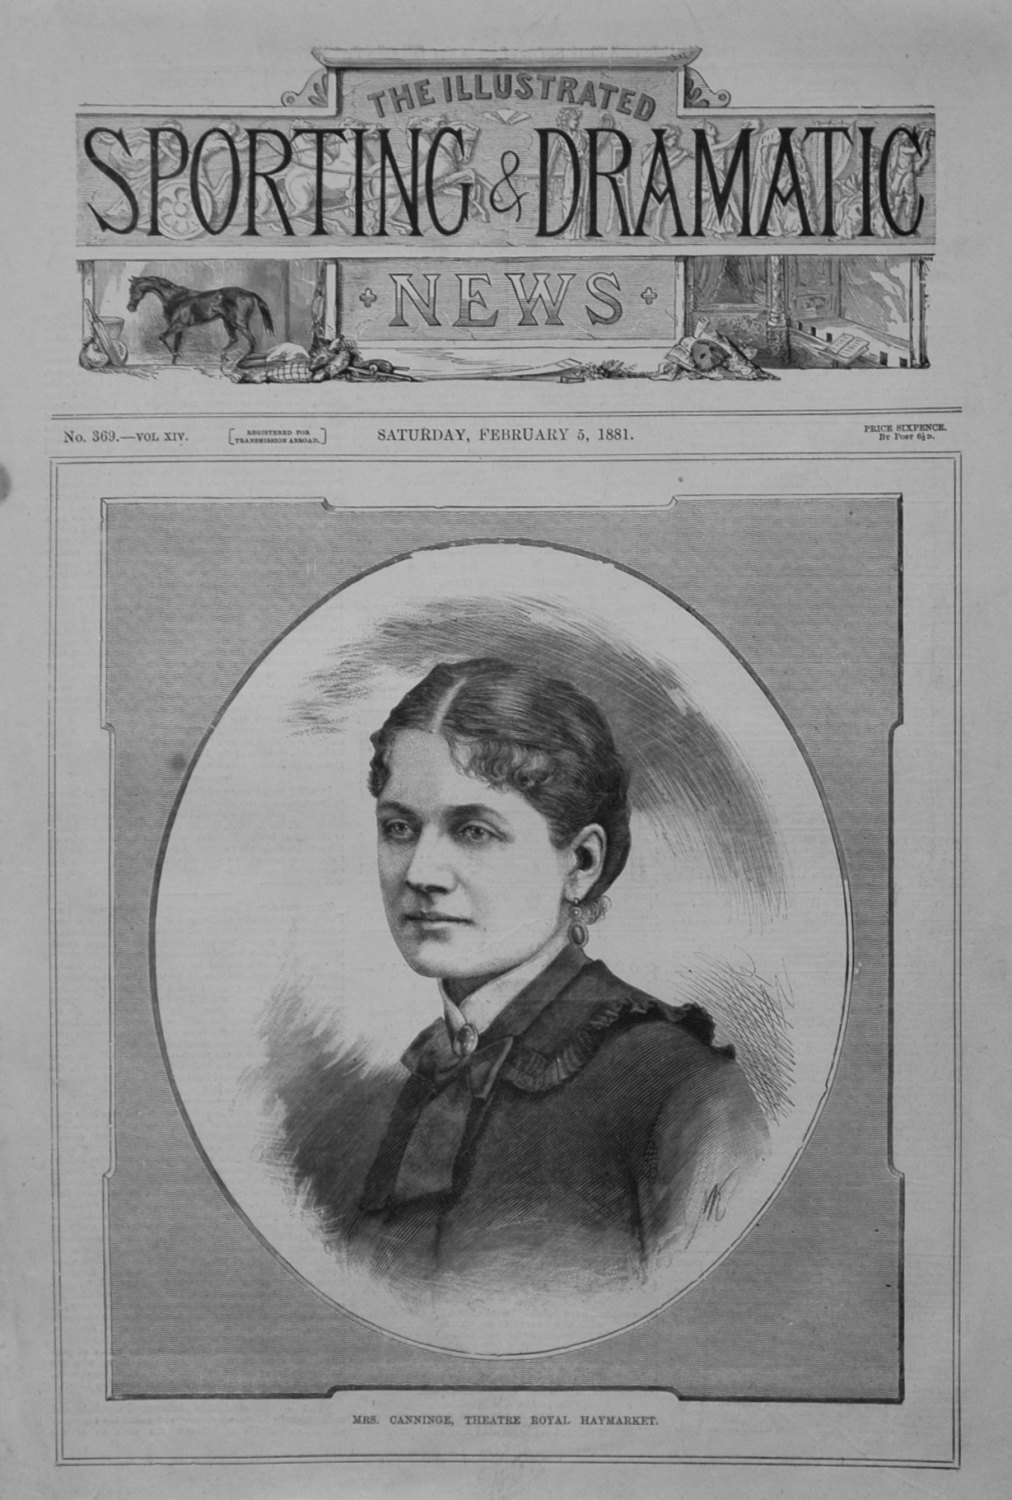 Mrs. Canninge, Theatre Royal Newmarket. 1881